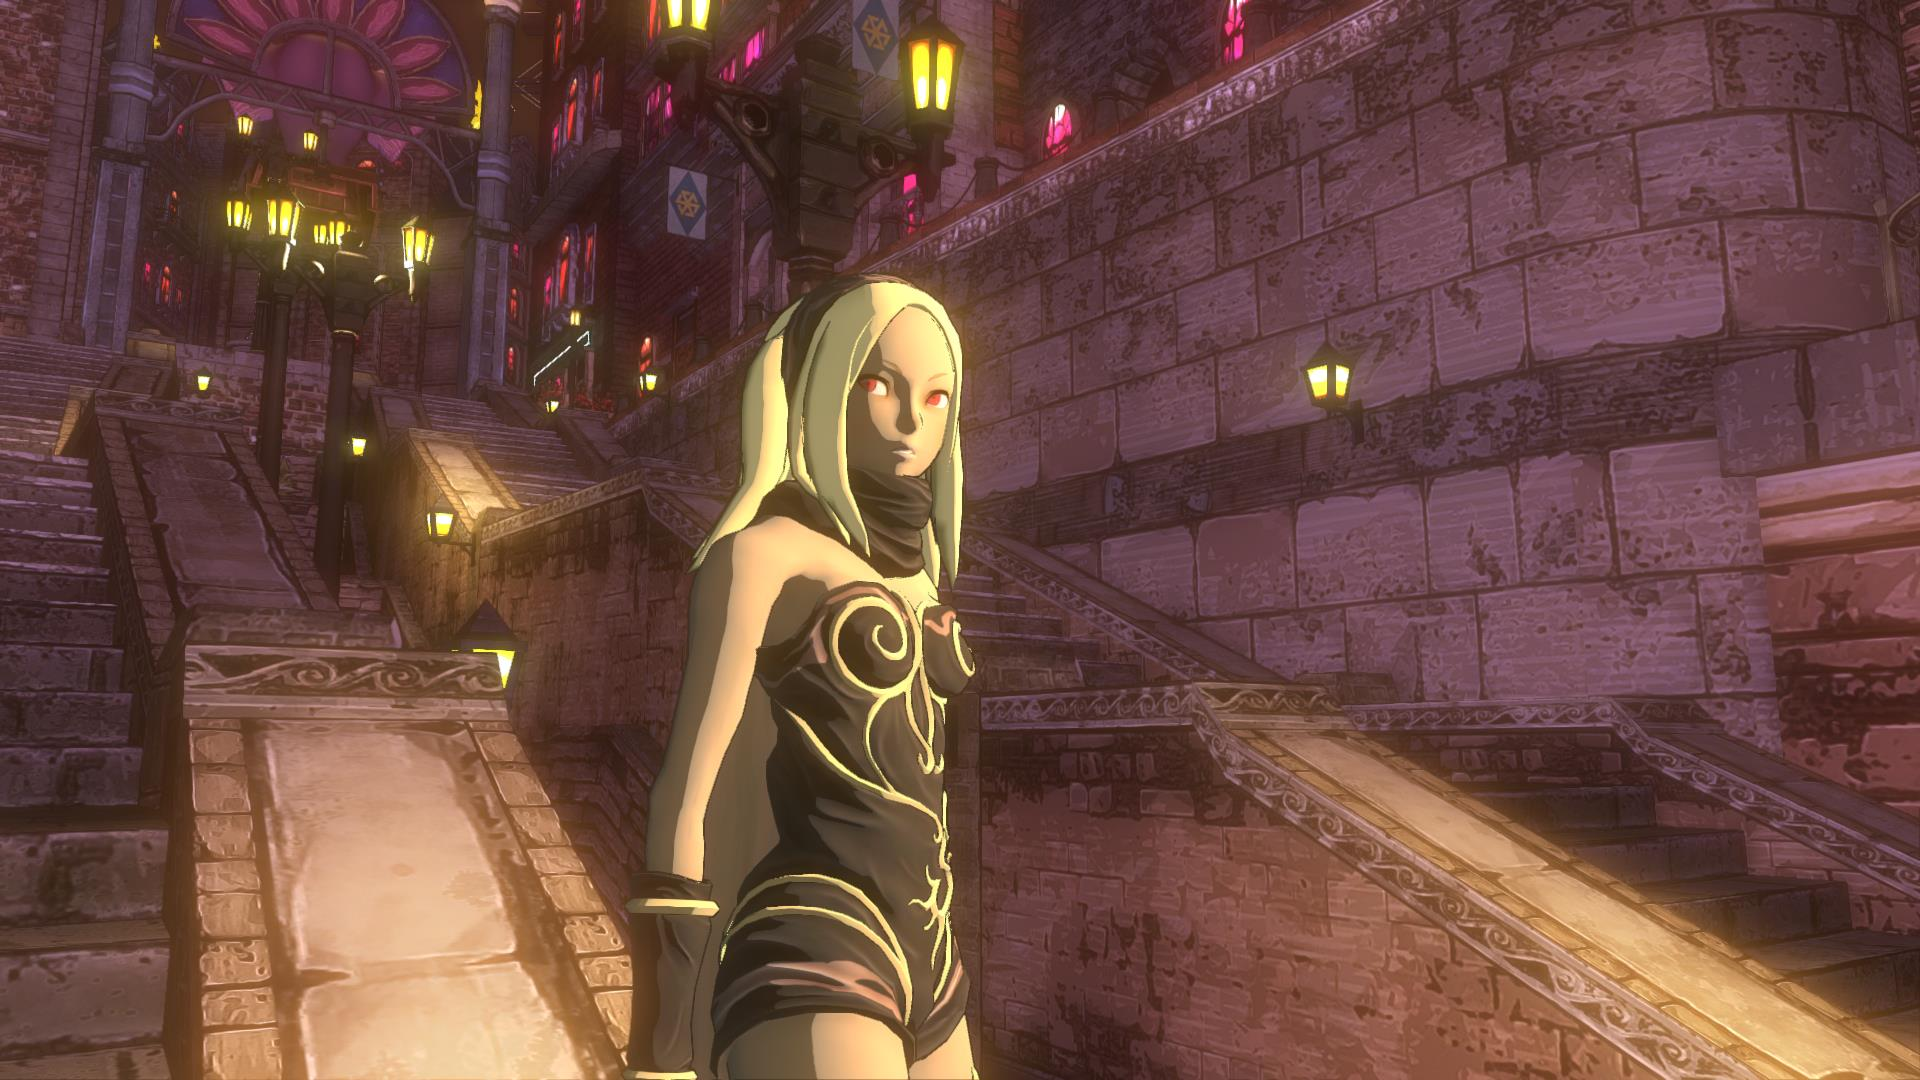 Gravity_Rush_Remaster (2)